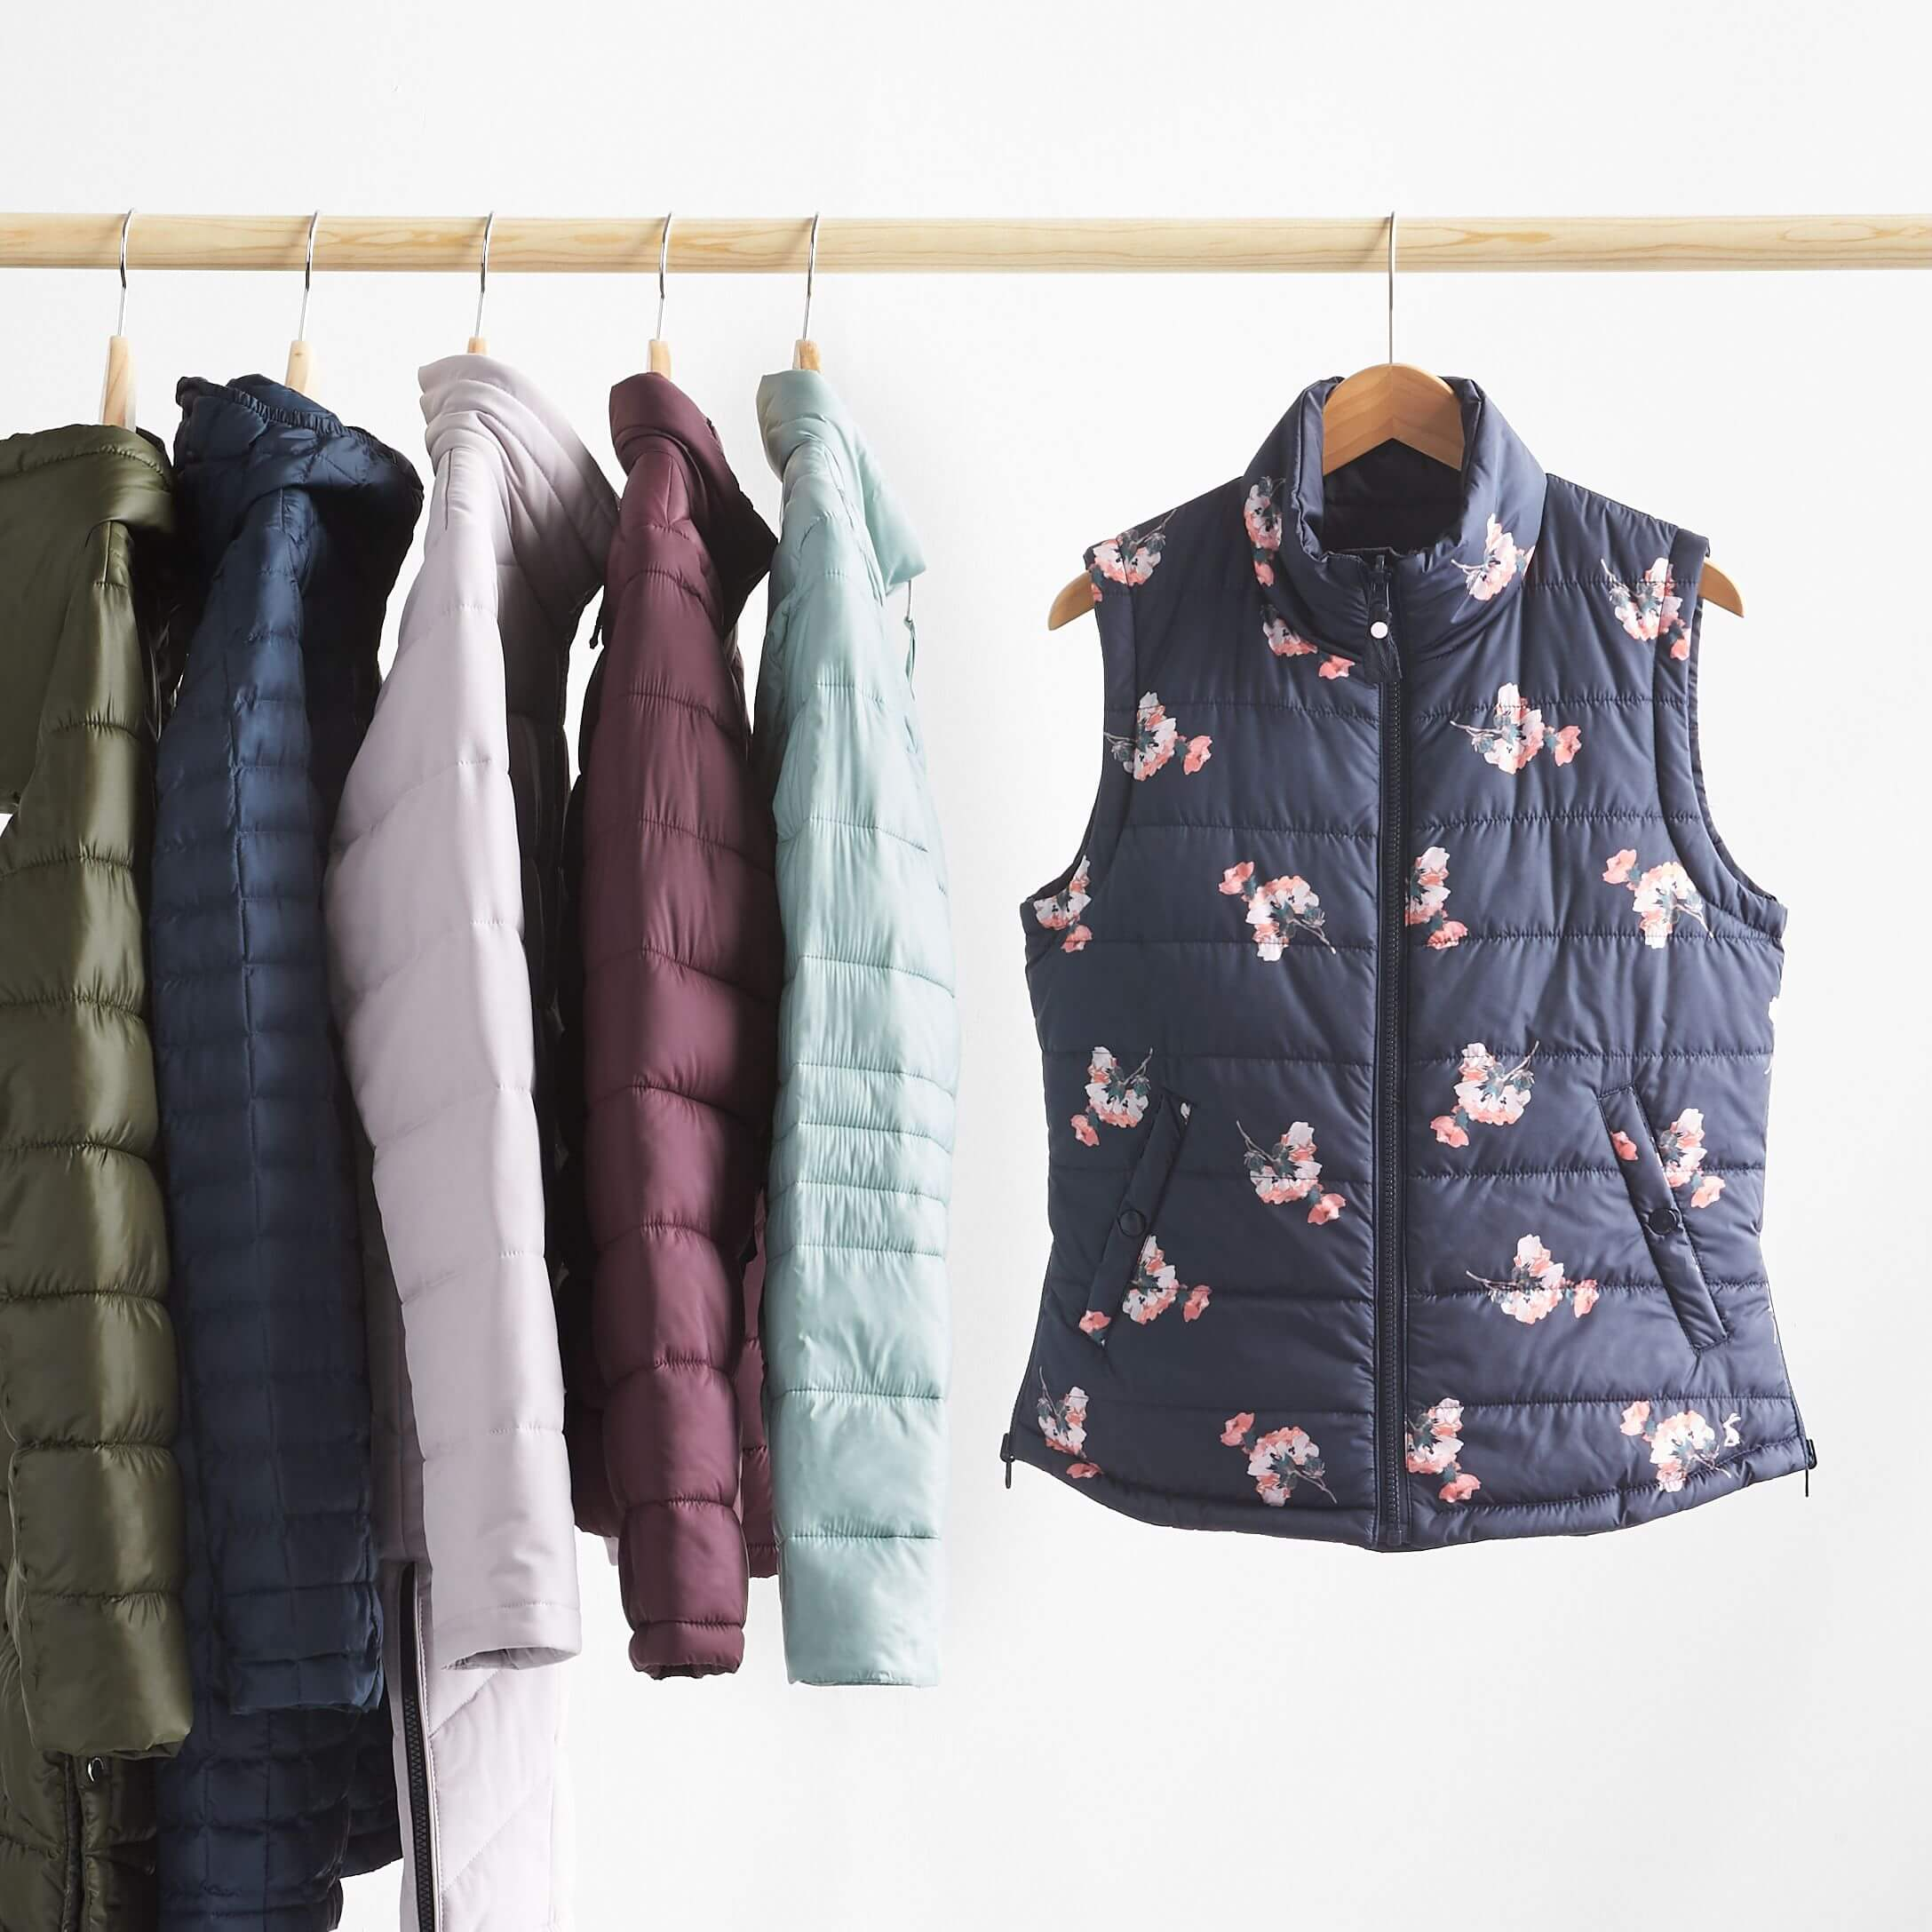 Stitch Fix Women's rack image featuring navy vest with floral print and puffer jackets in light blue, burgundy, lilac, navy and olive green tones hanging on wooden pole.